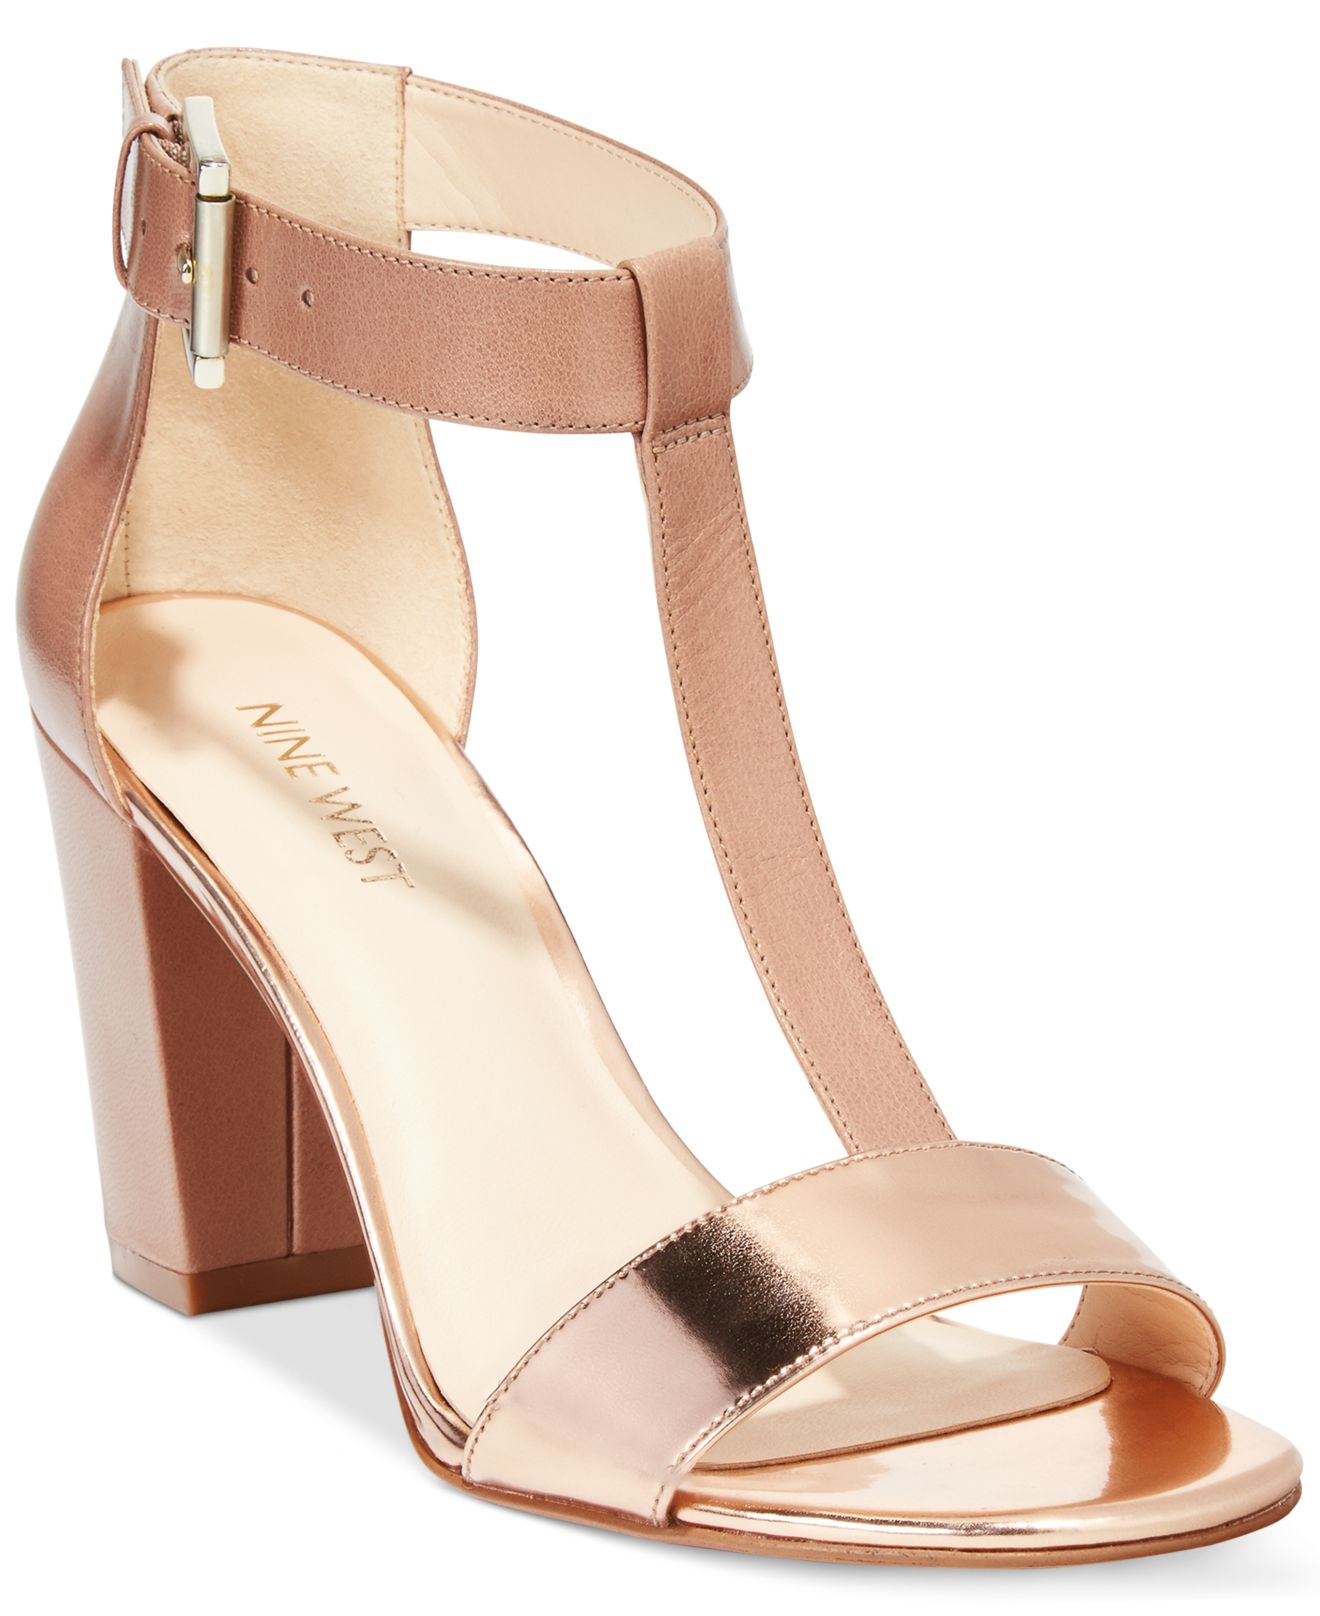 c6fc66a65daed1 Lyst - Nine West Brannah Dress Sandals in Pink